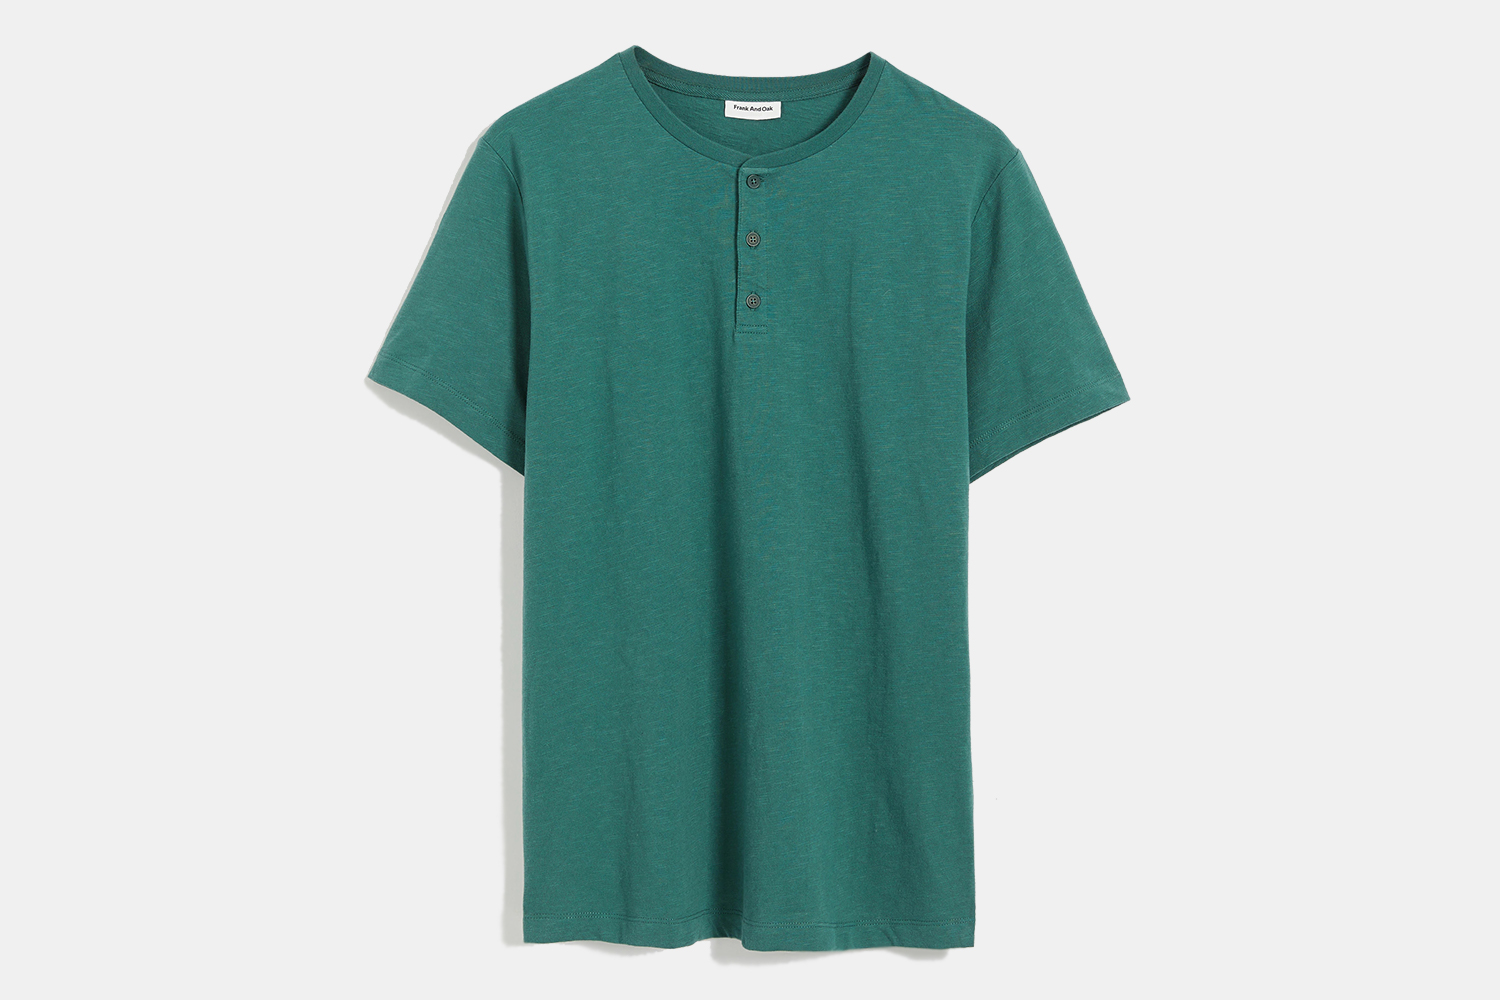 Frank And Oak Recycled Cotton Henley Tee